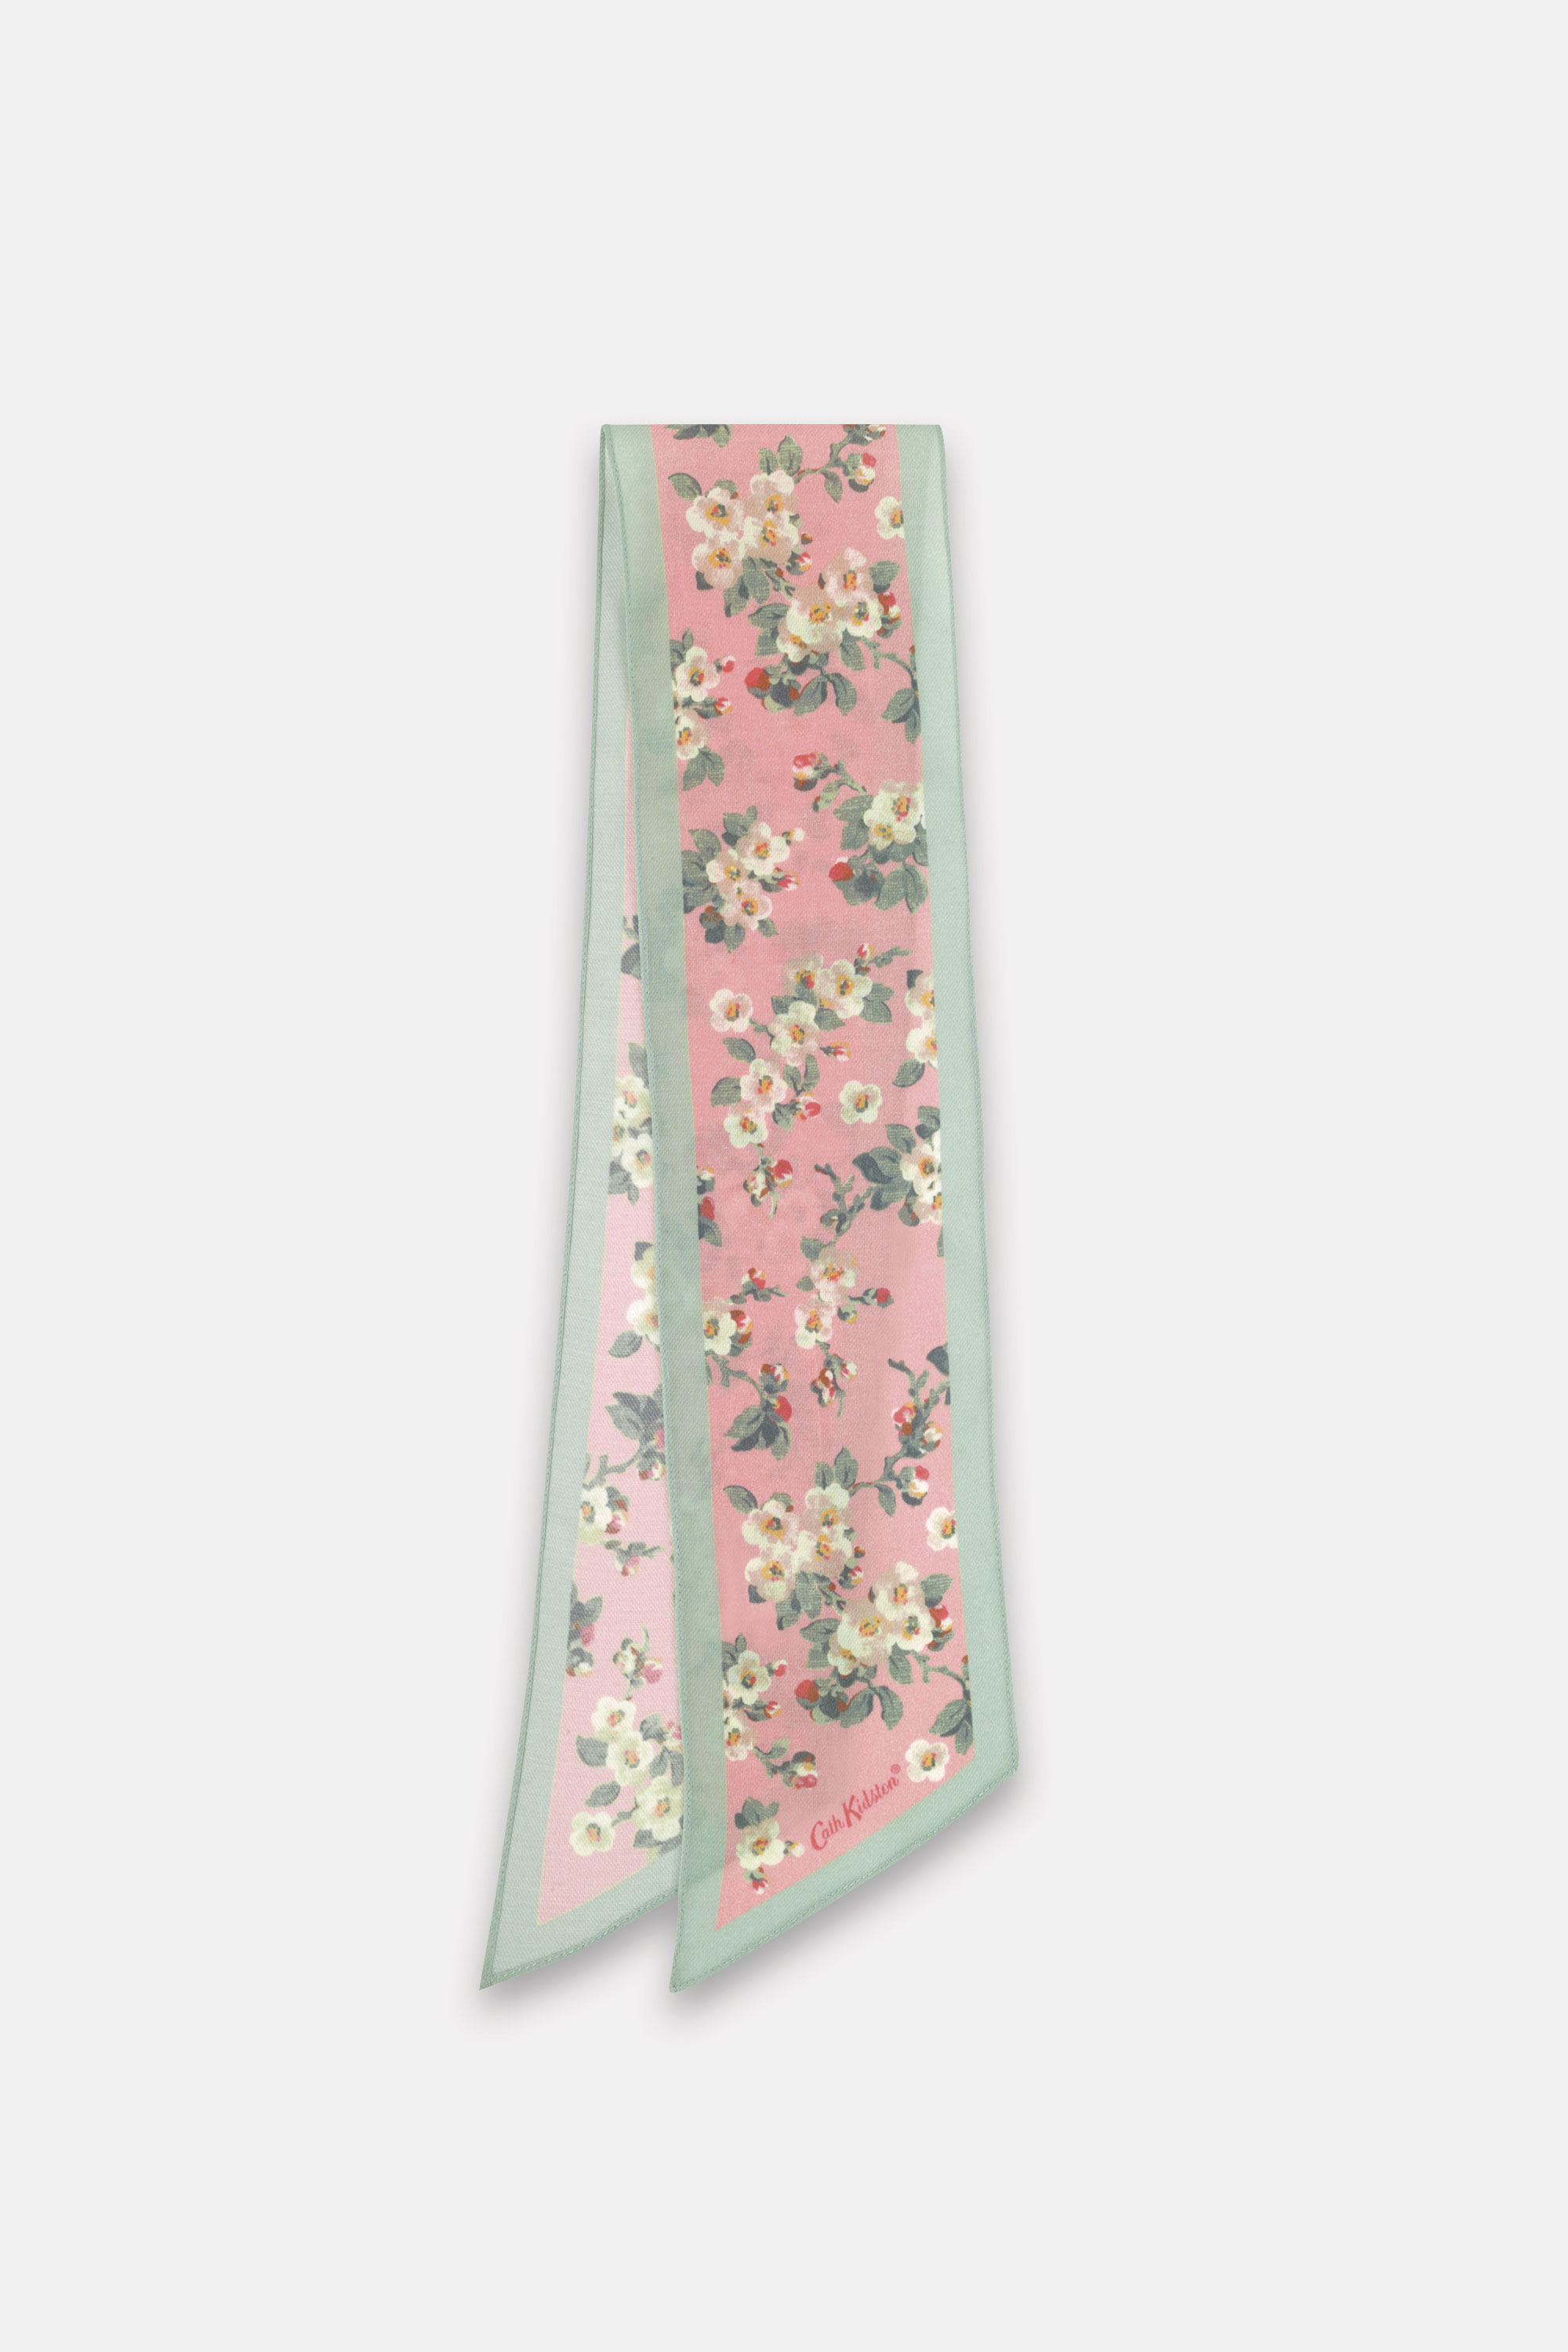 Cath Kidston Mayfield Blossom Scarf in Pink, 100% Viscose